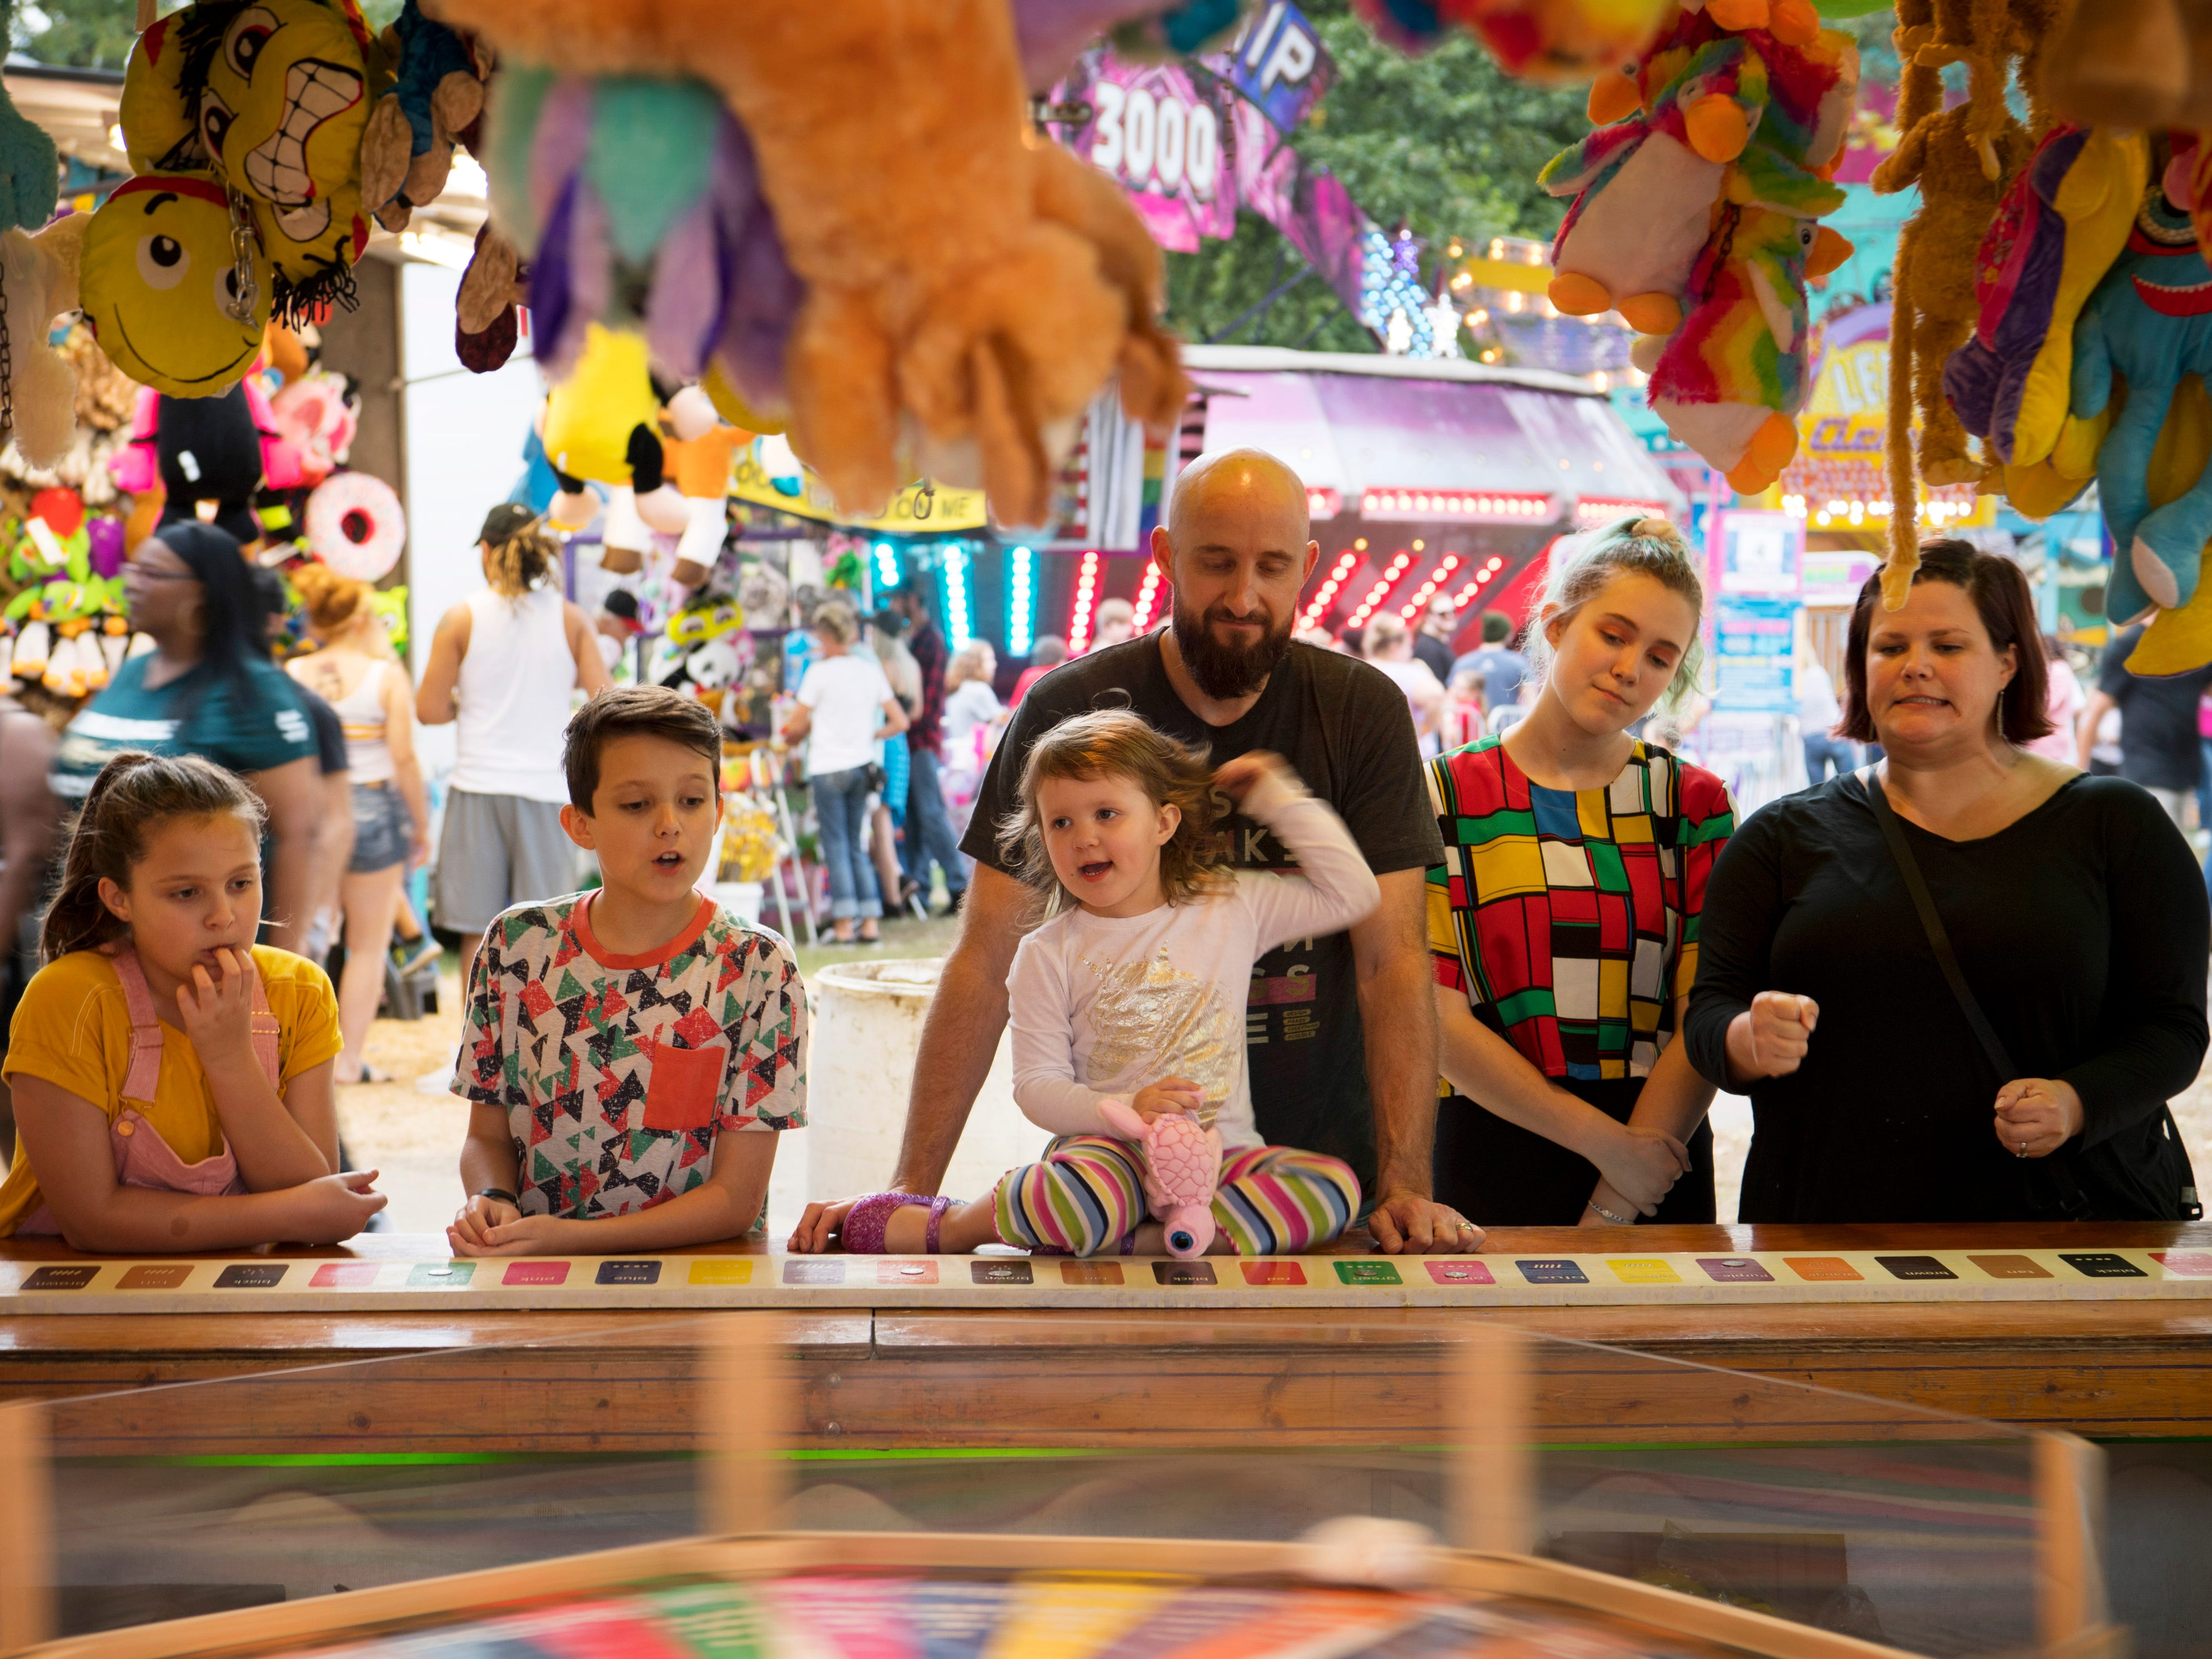 The West Side Nut Club's Fall Festival is a family tradition for Dave and Heather Harper and they made time to keep the tradition going with kids, from left, Penny, 11, Truman, 12, Jacinda, 3, and Lucy, 15.